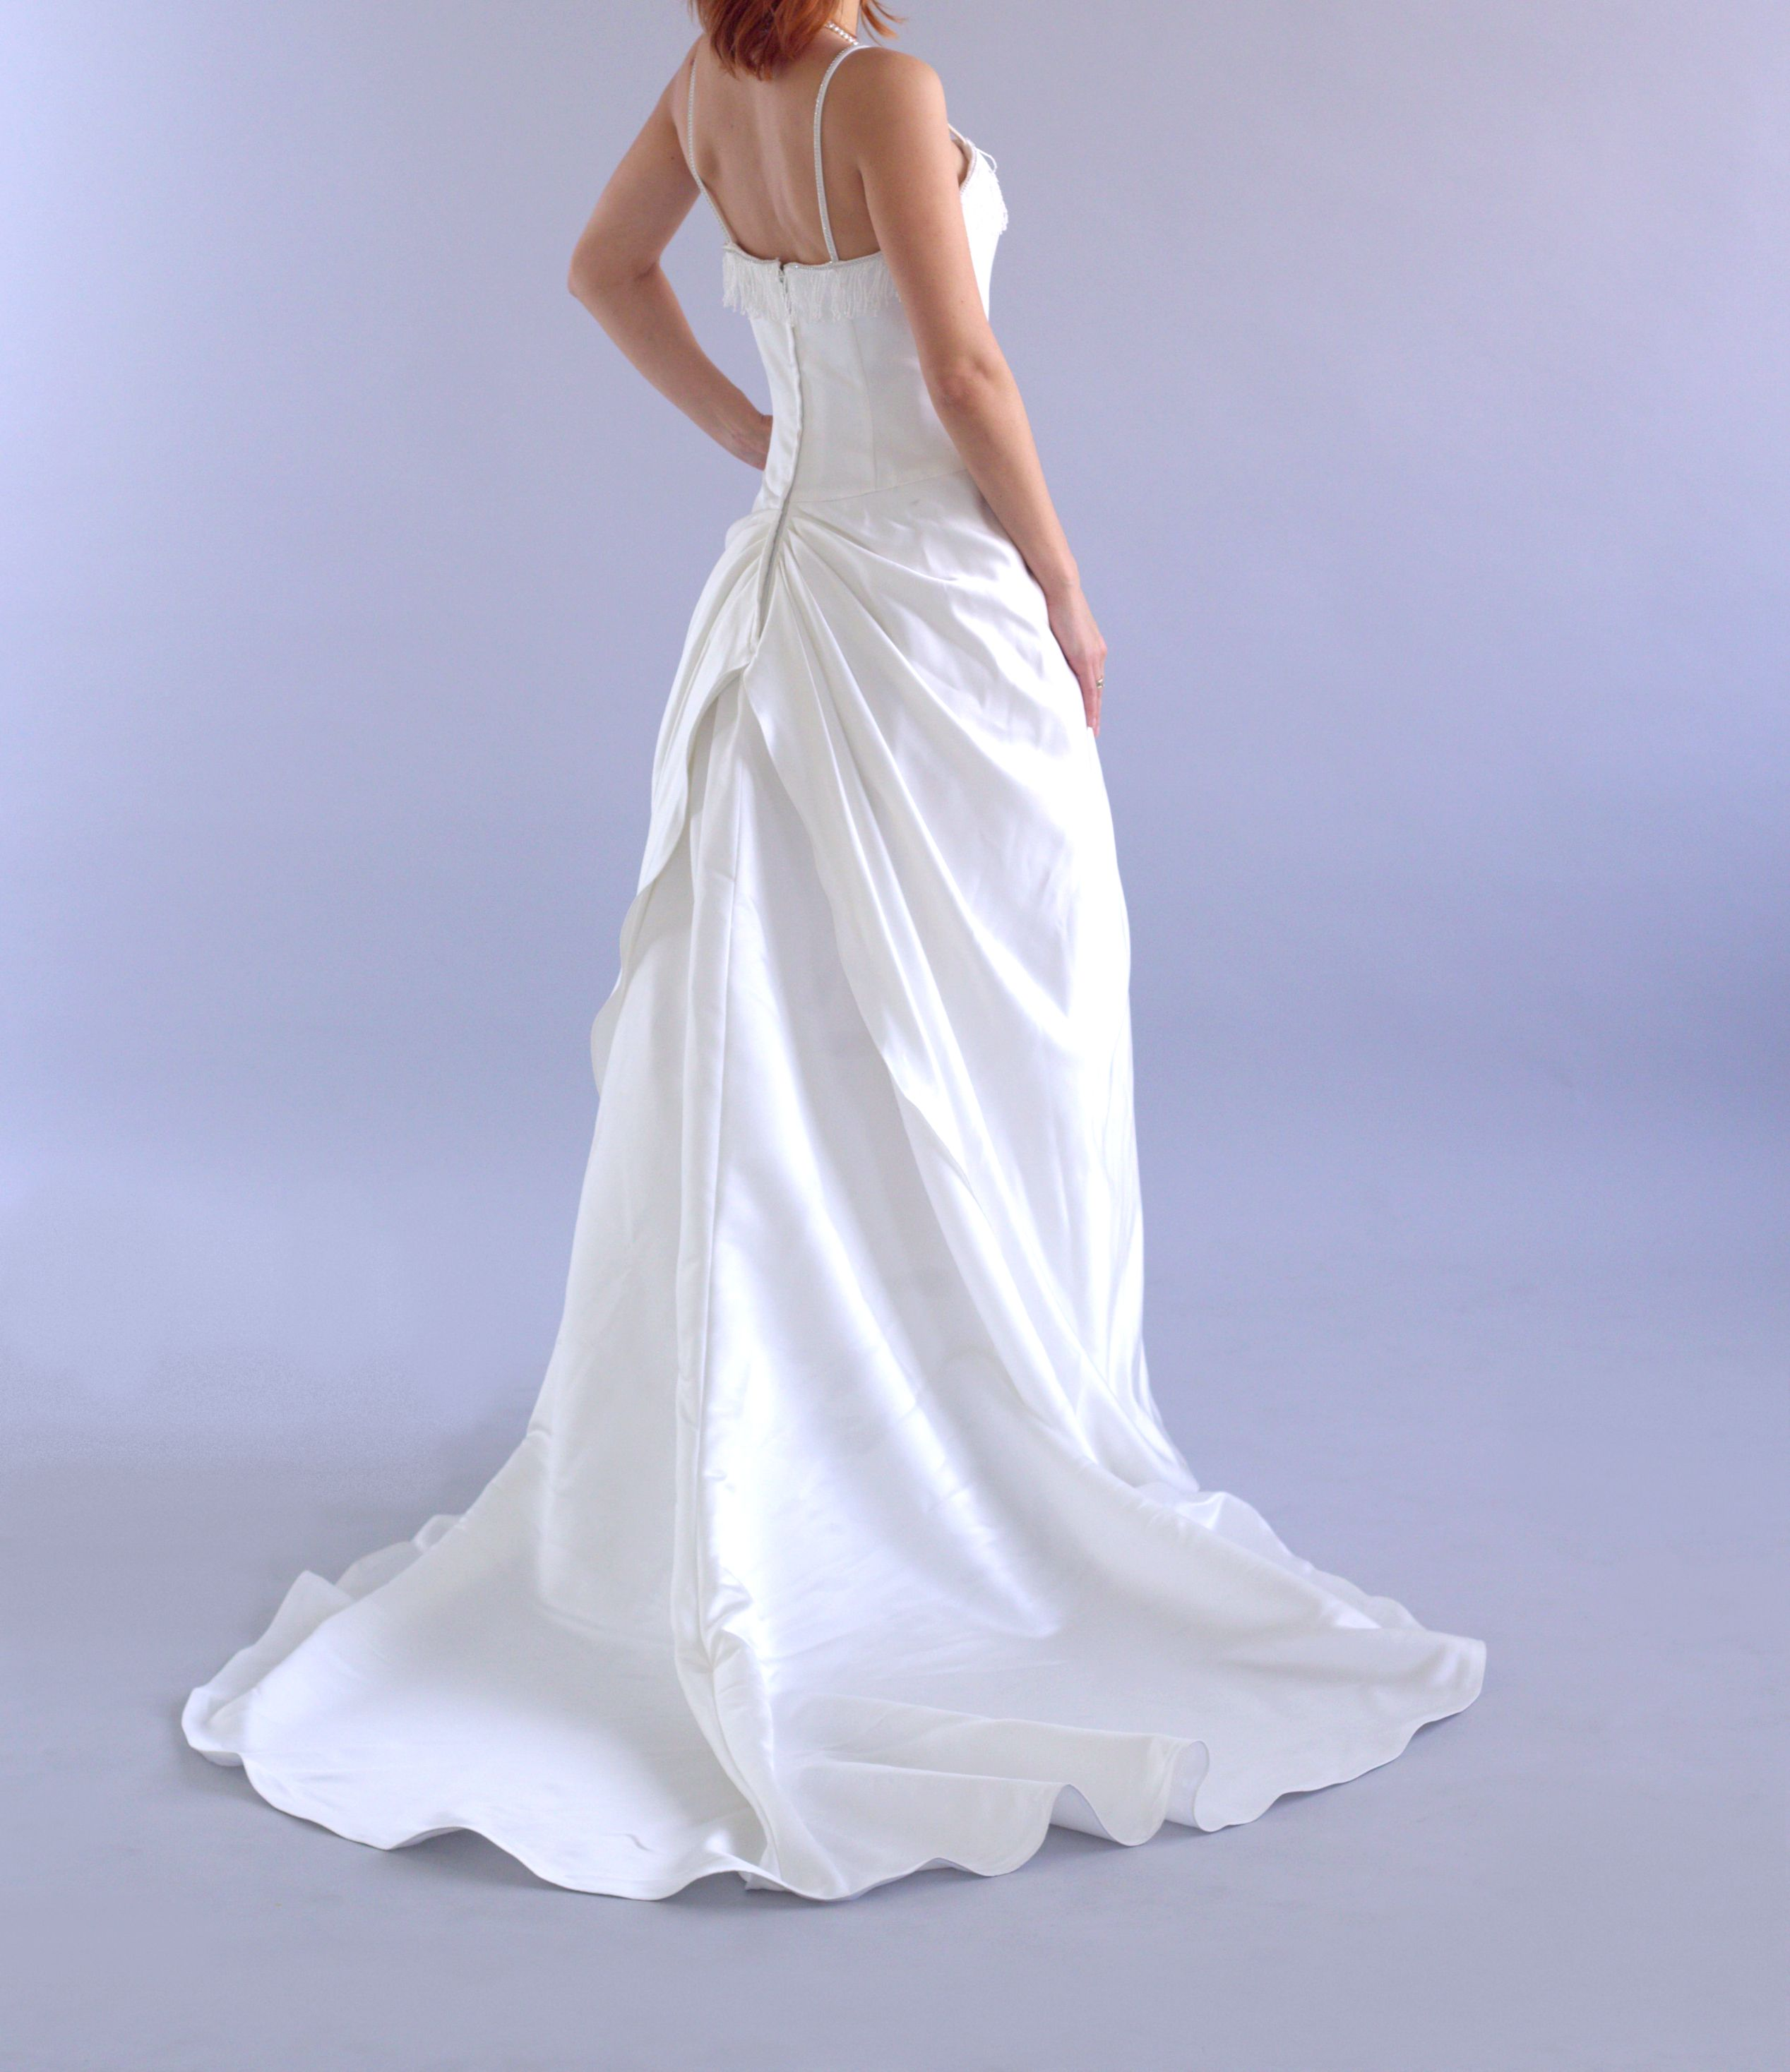 How Much Does It Cost To Ship A Wedding Dress | Classic Flower Ivory Wedding Dress By Pronuptia French Design